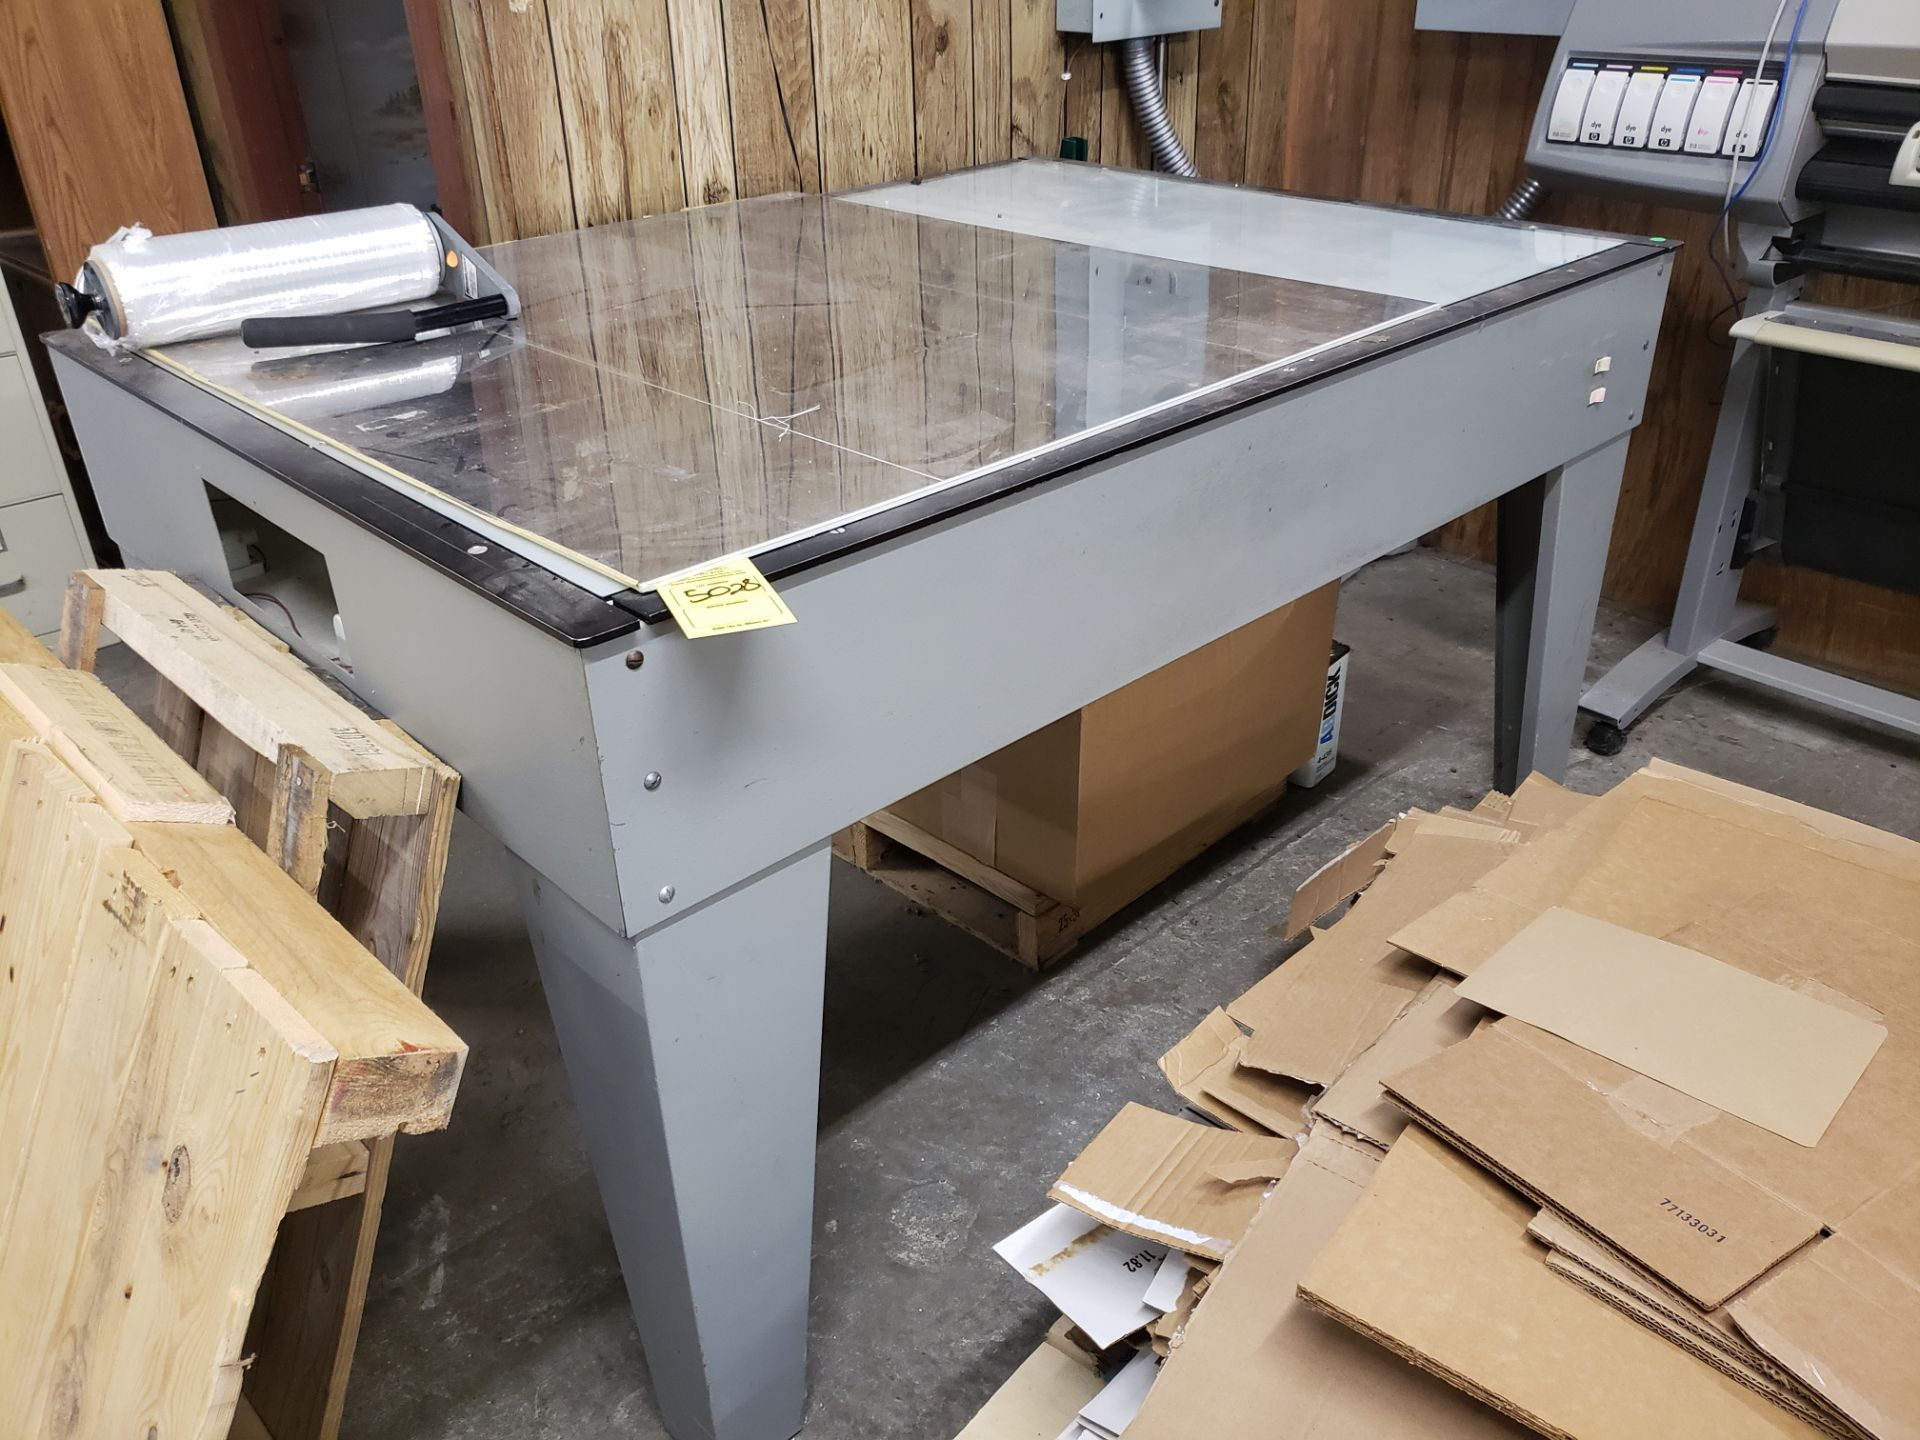 Lot 5028 - LIGHT TABLE (LOCATED AT: 16335 LIMA ROAD BLDG. 4 HUNTERTOWN, IN 46748)